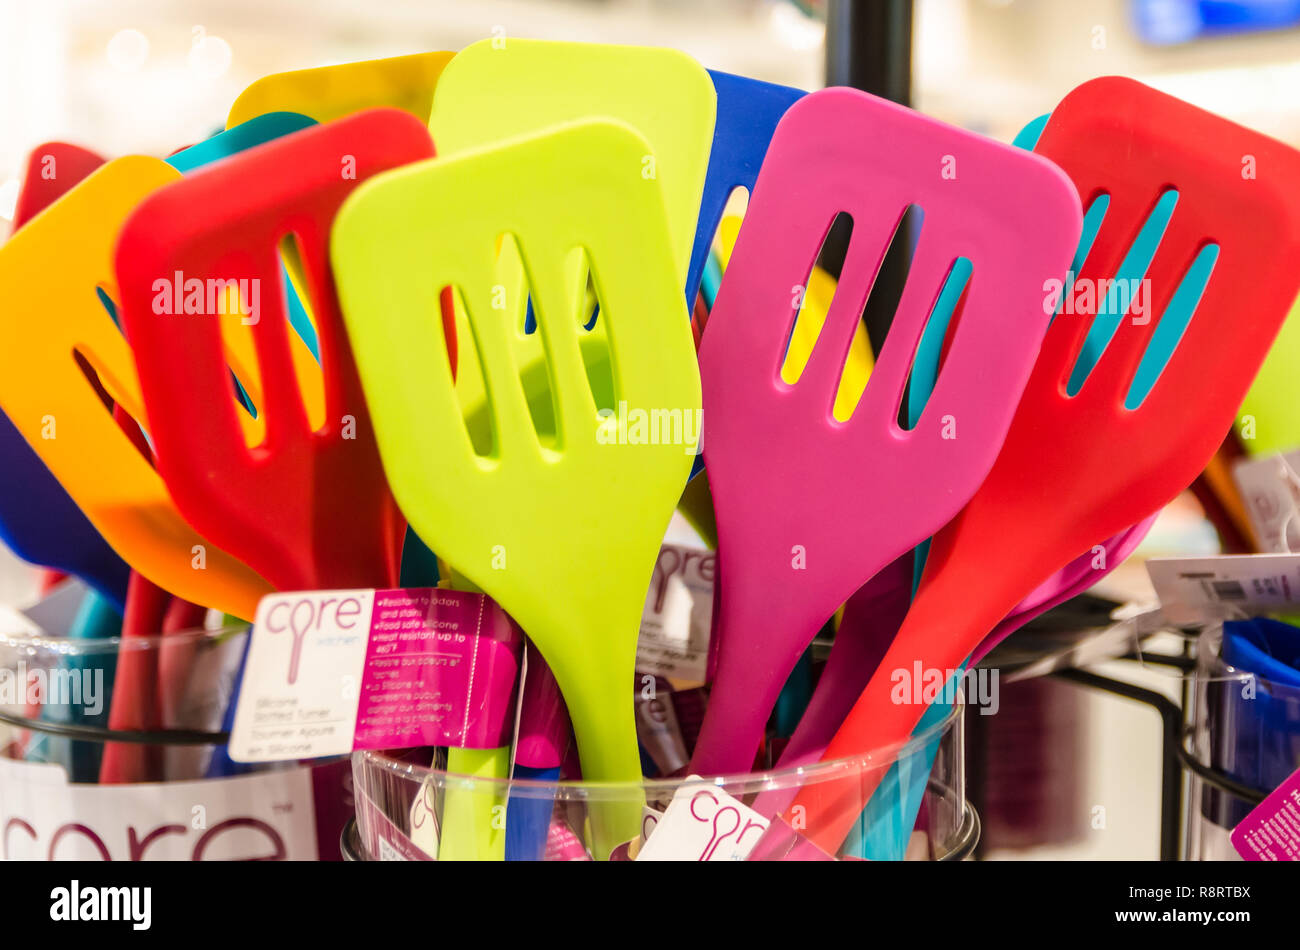 Core spatulas are displayed at the Viking Range retail store in Greenwood, Mississippi. - Stock Image